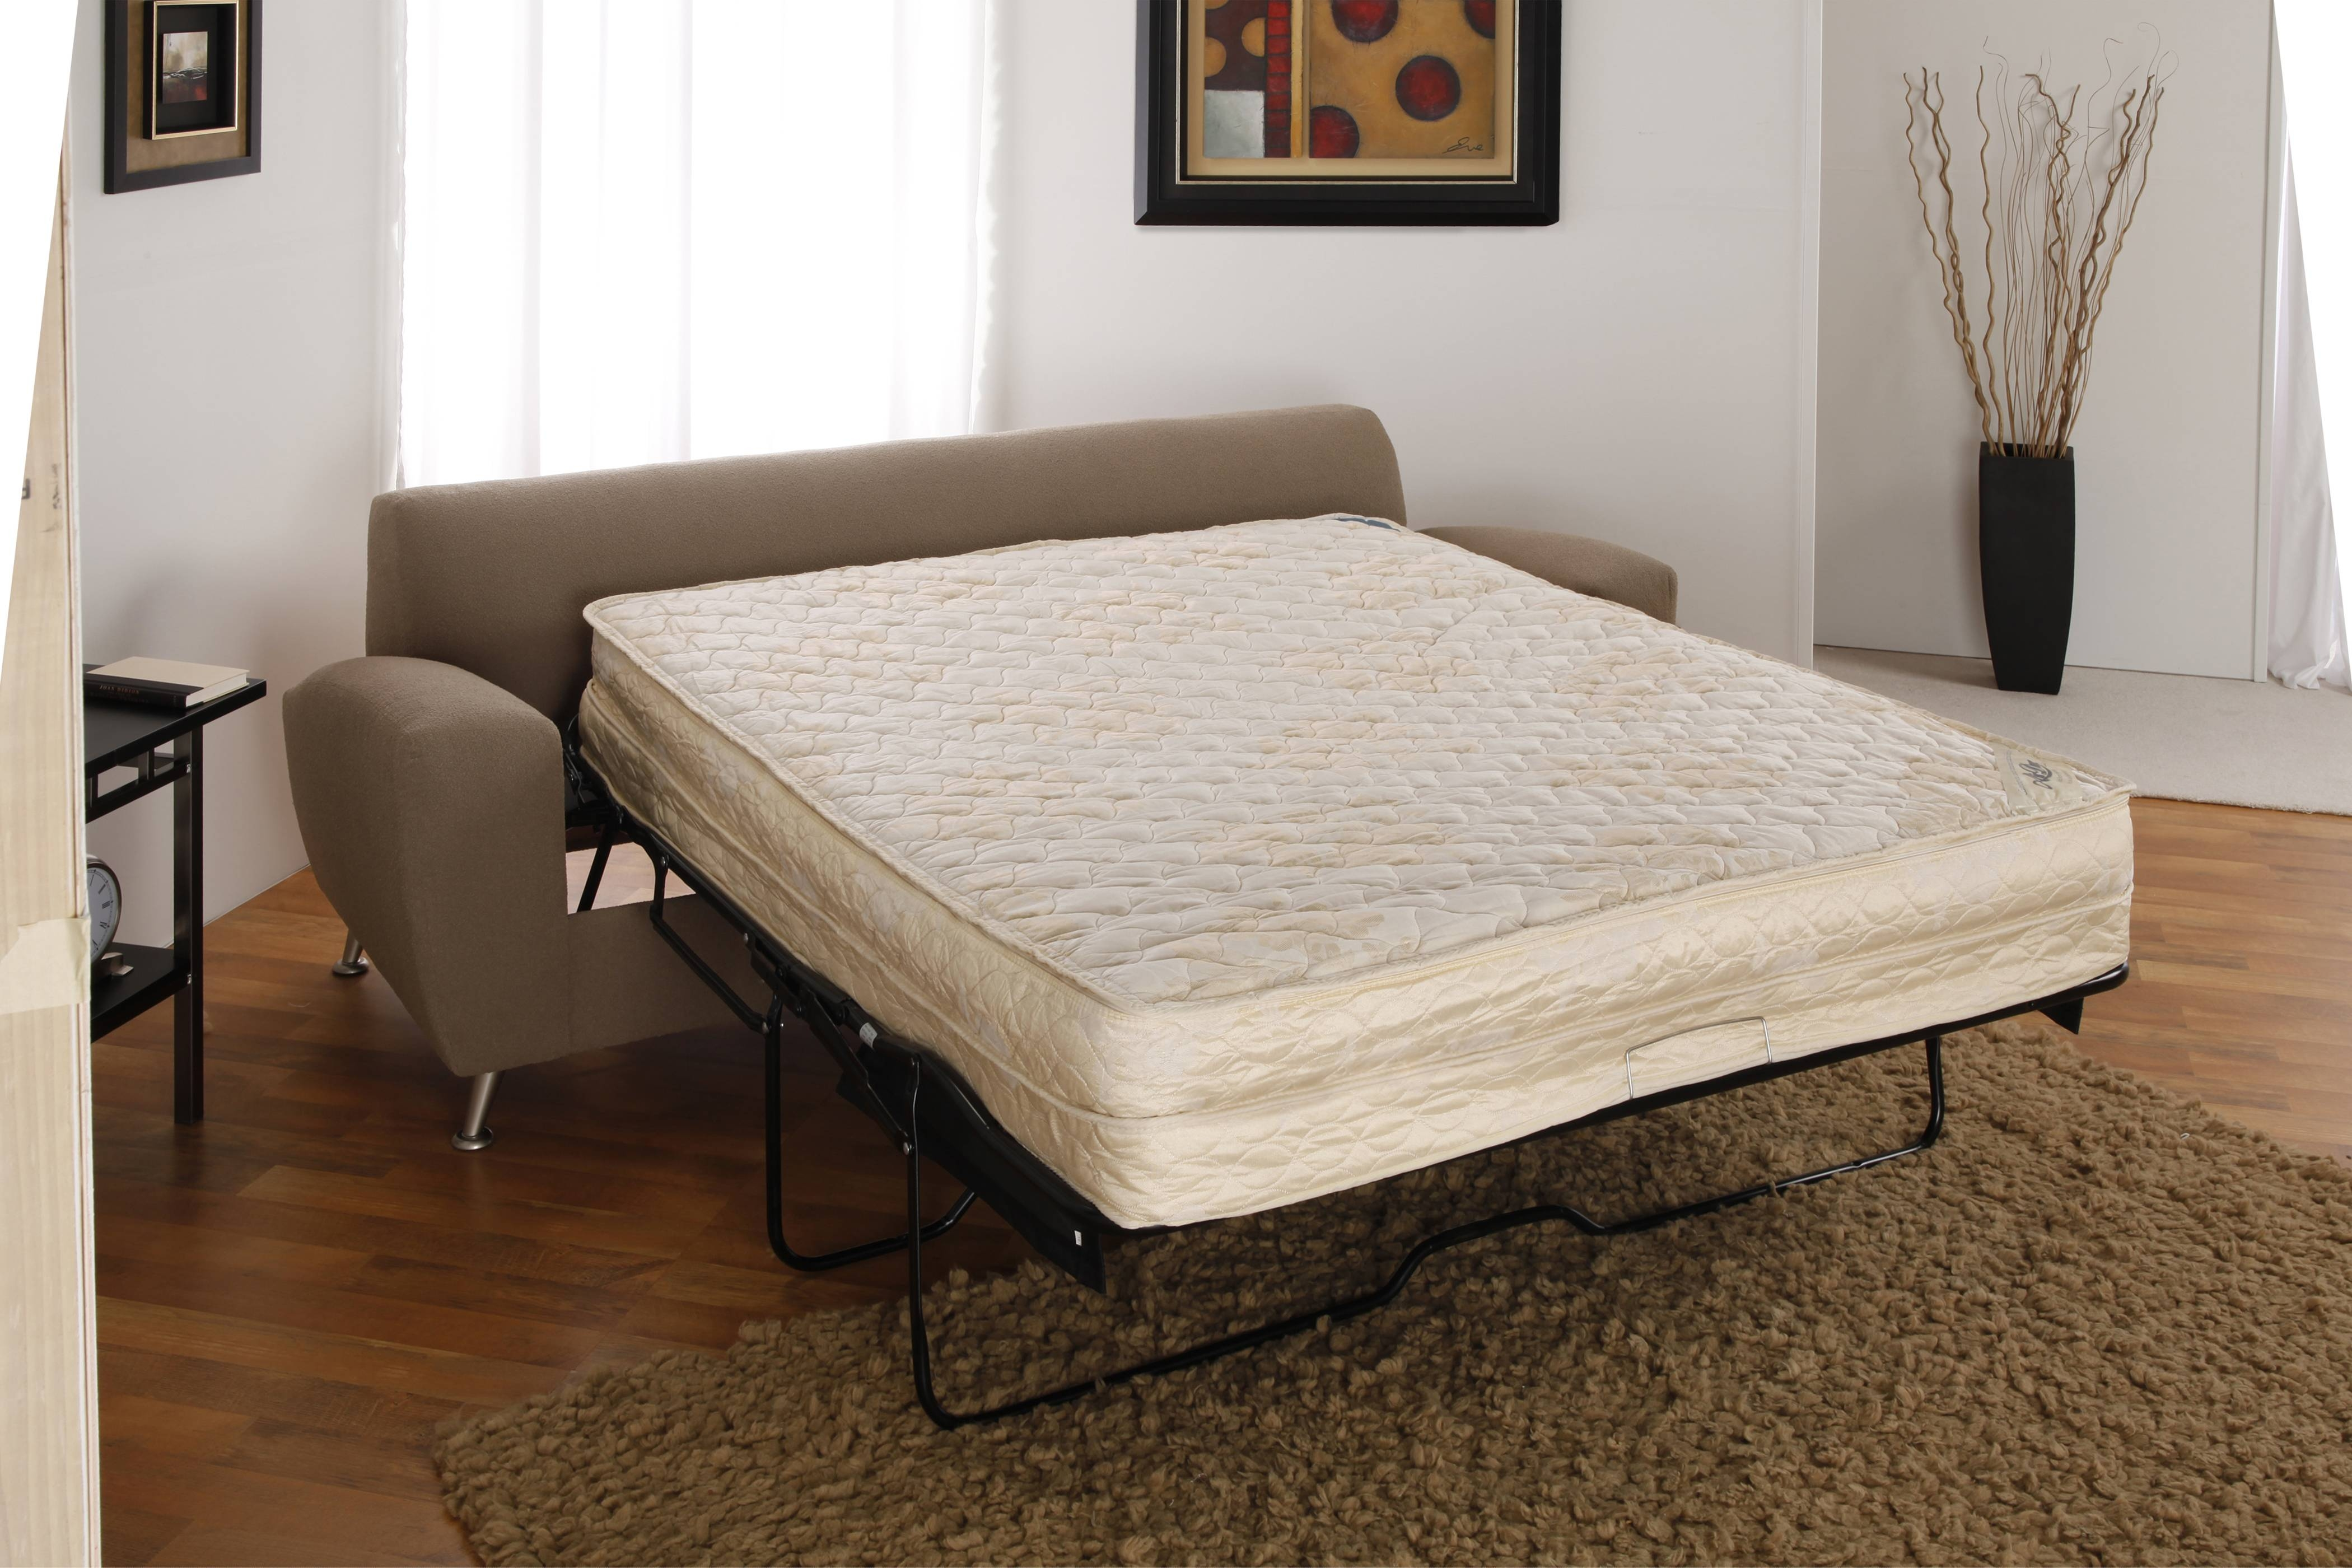 Fashion Bed Group Air Dream Sleeper Sofa Mattress With Regard To Sofa Beds With Mattress Support (View 4 of 15)